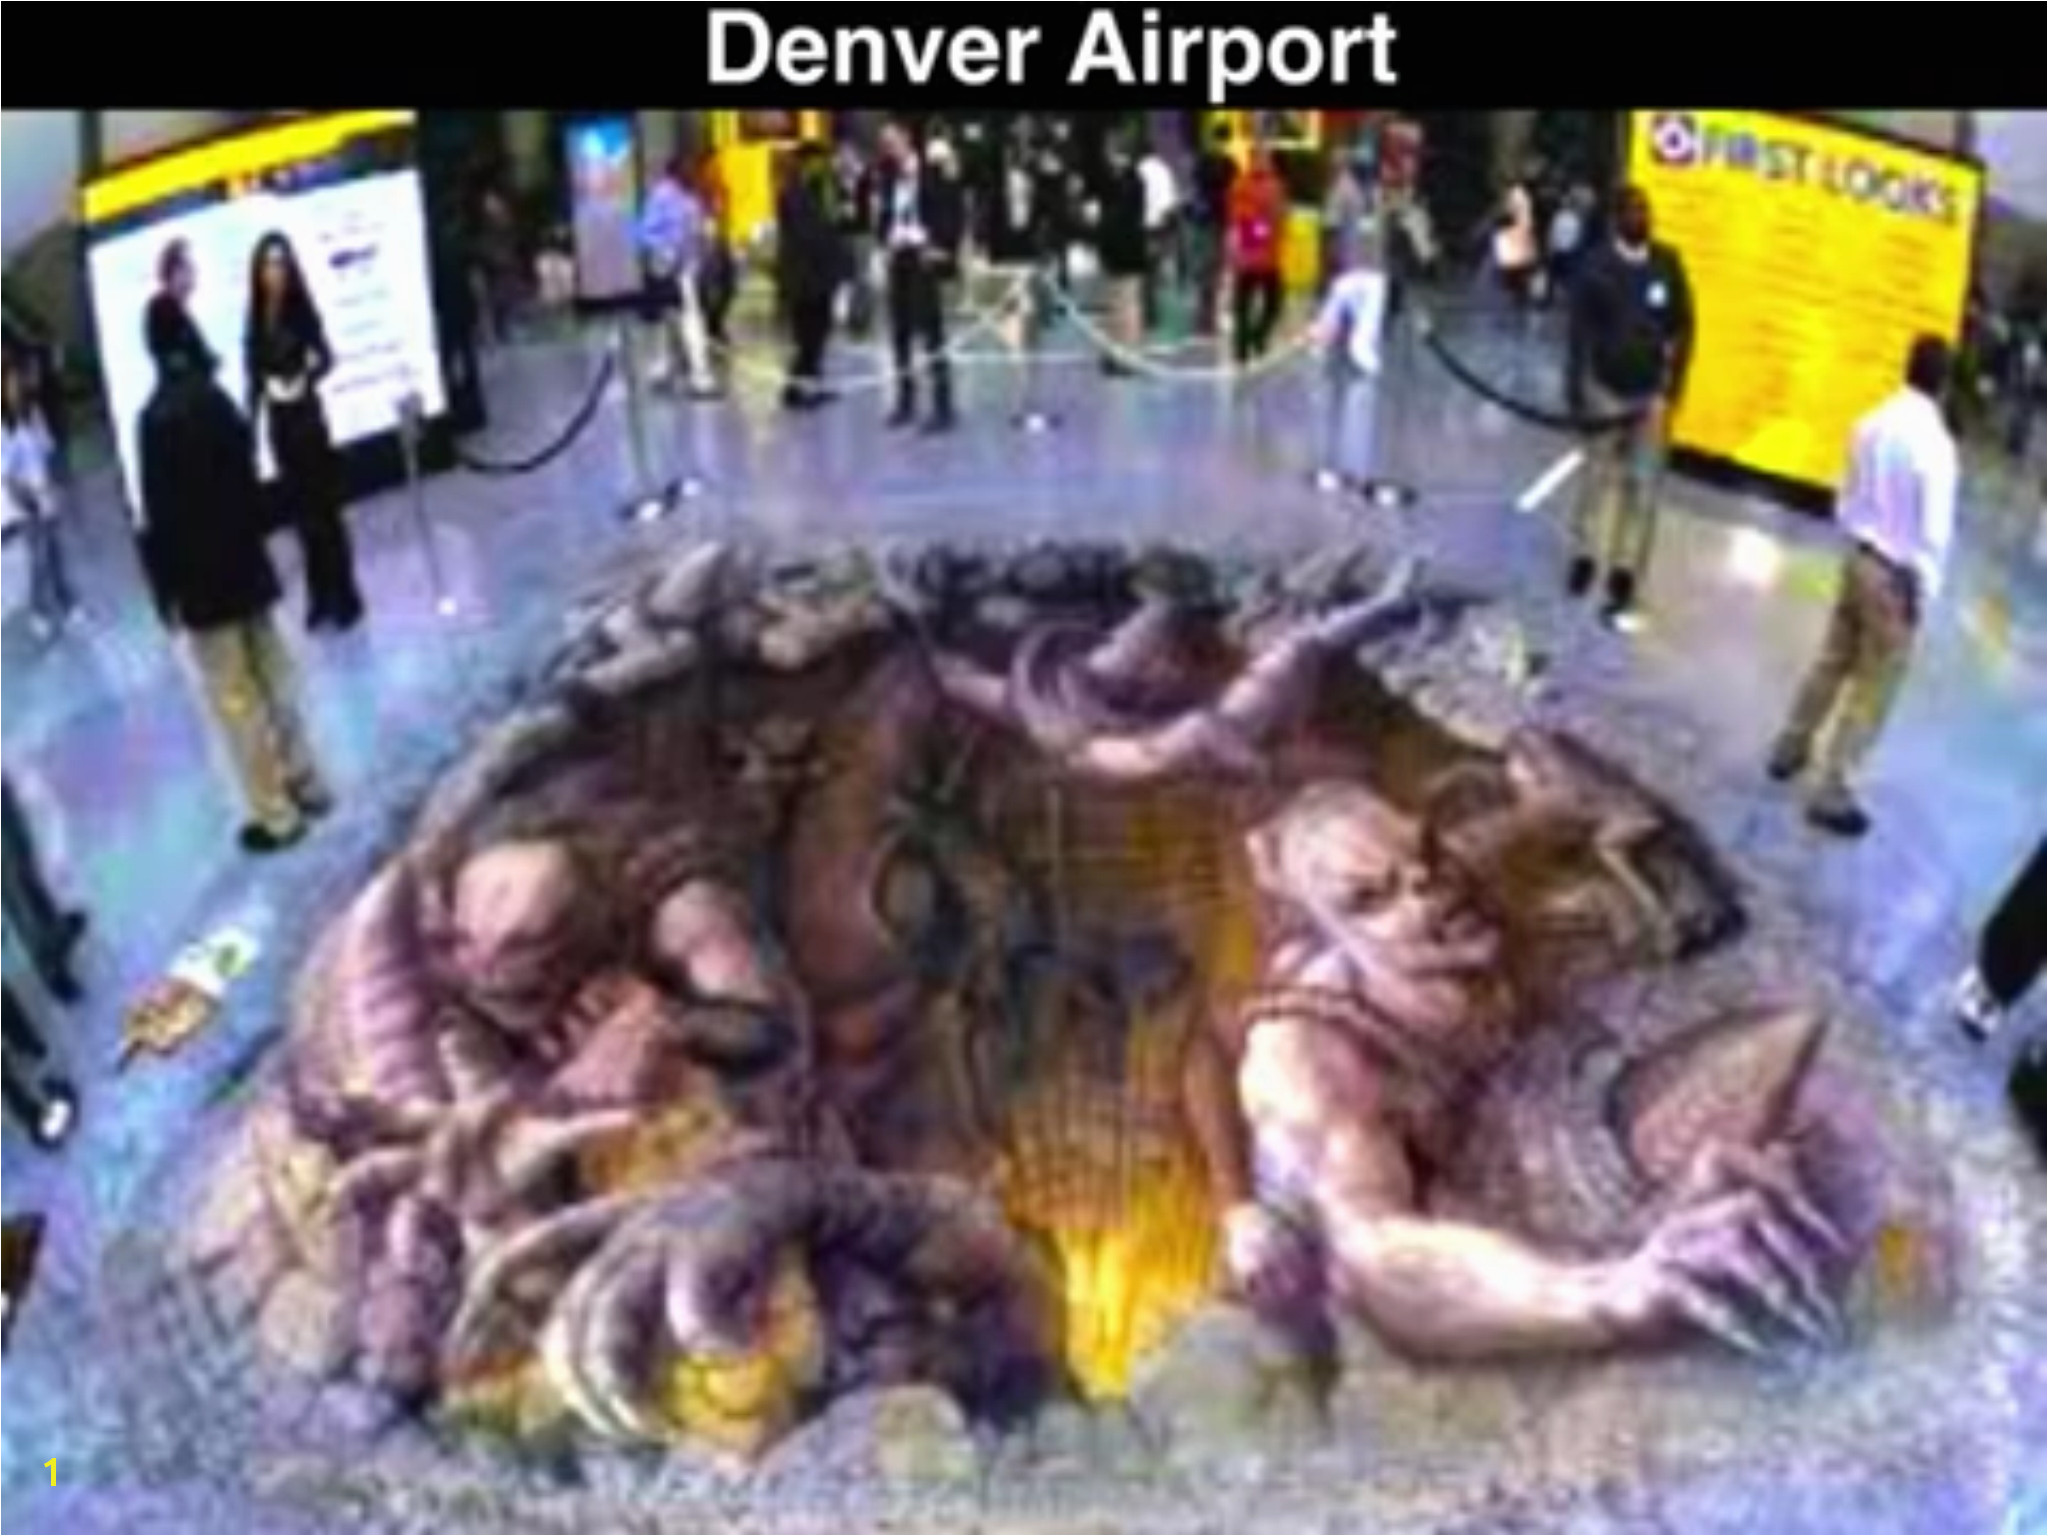 Mural on the floor of the Denver airport